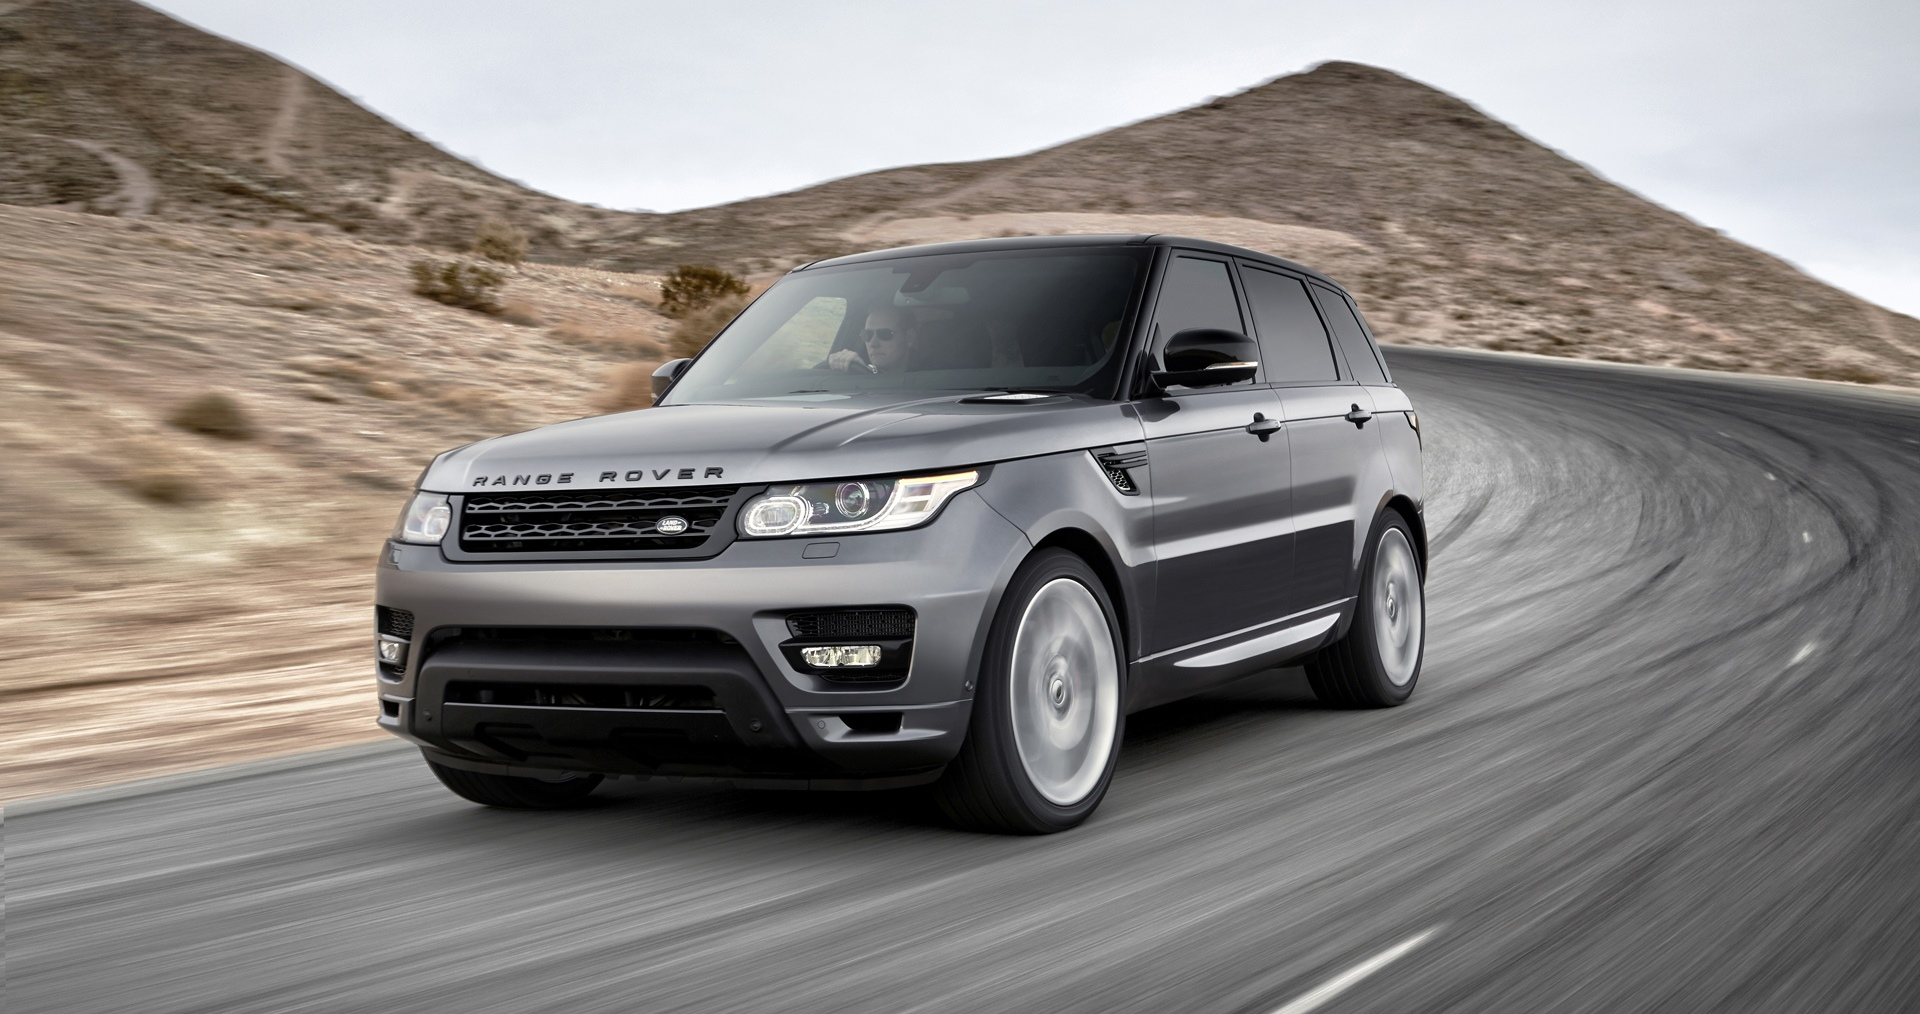 New-Range-Rover-Sport-2014-photo-1